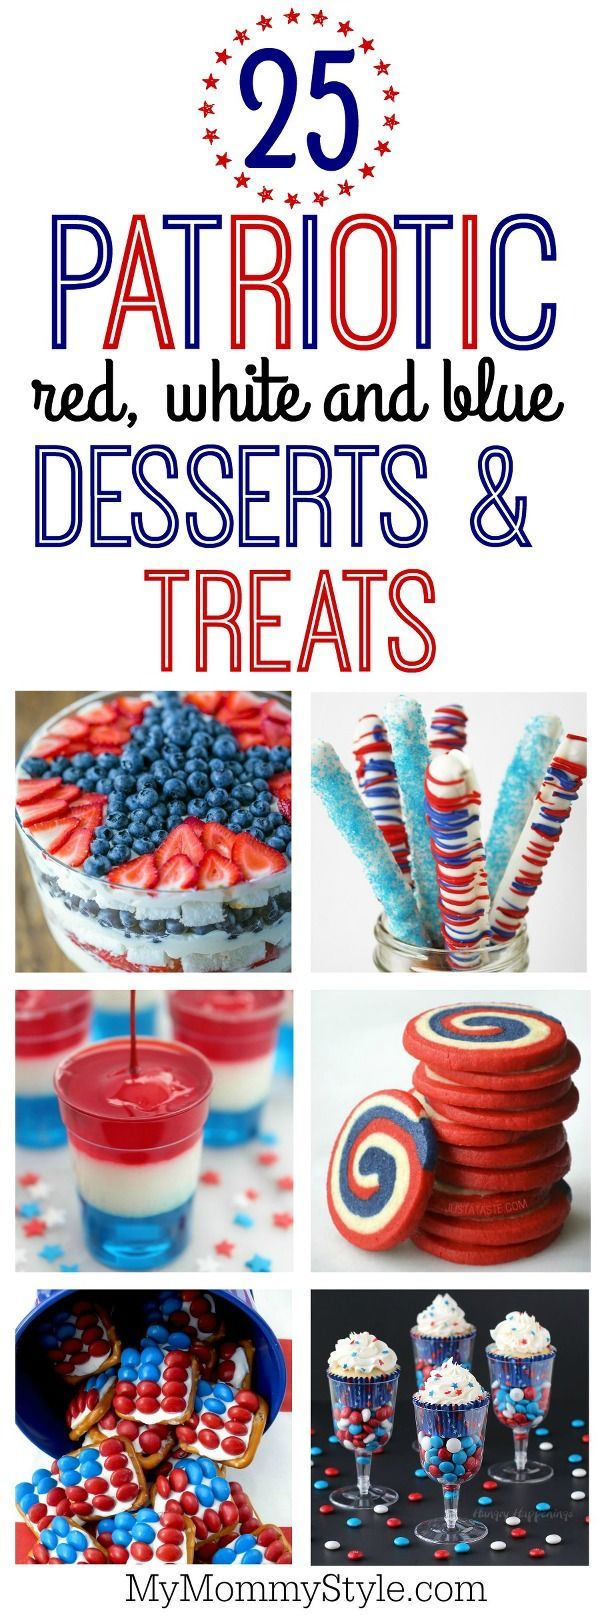 25 red, white and blue desserts and treats perfect for 4th of July, Memorial Day or any summer BBQ